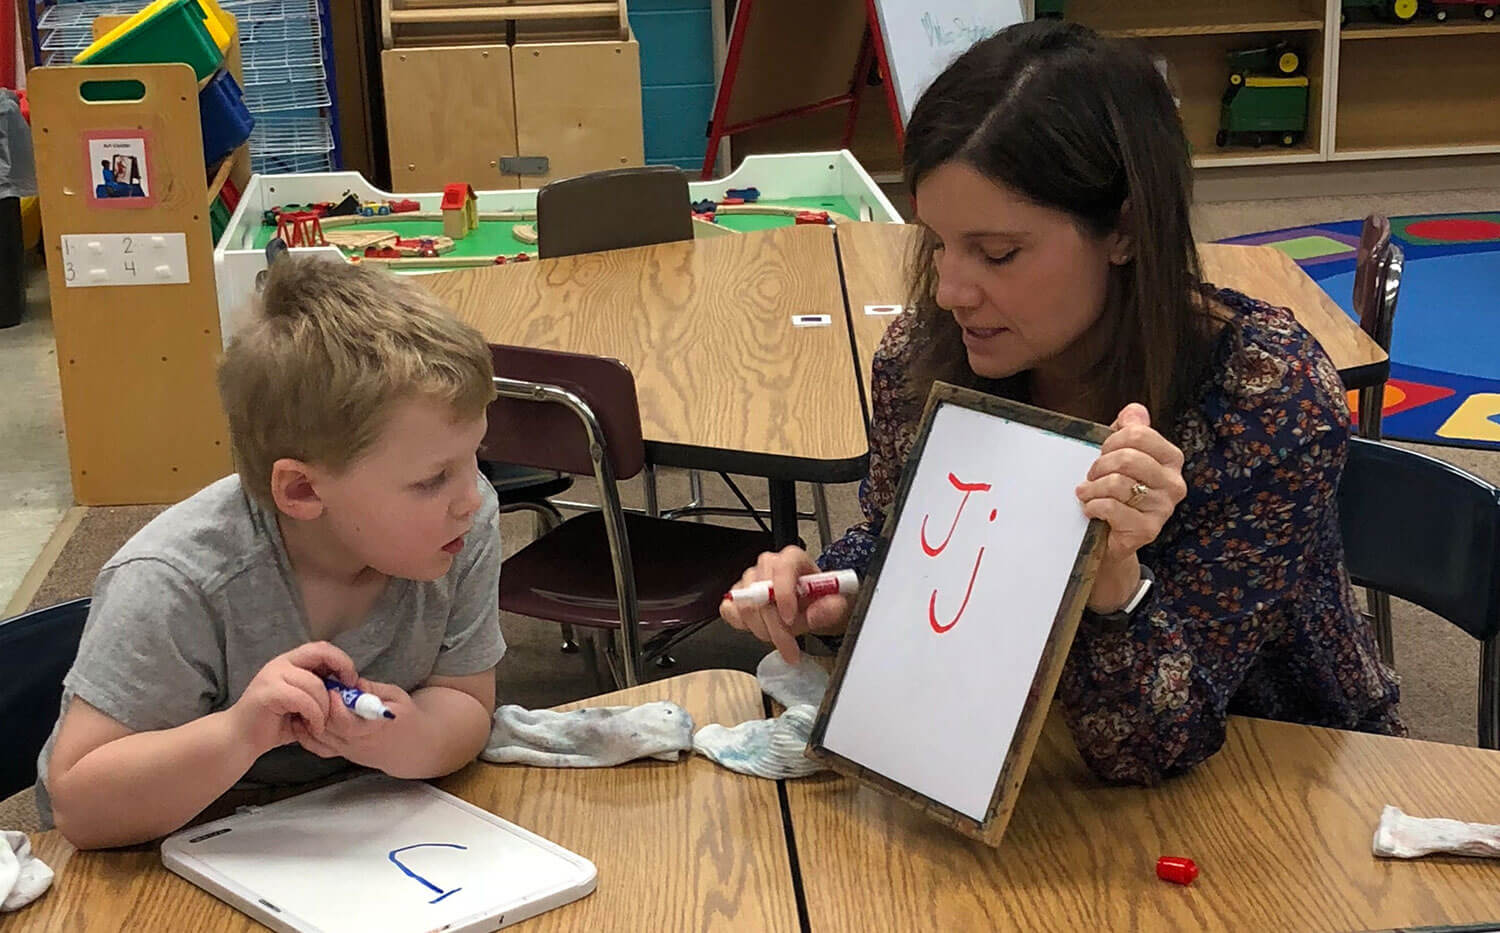 Minnewaska area preschool student practicing writing letters with his teacher